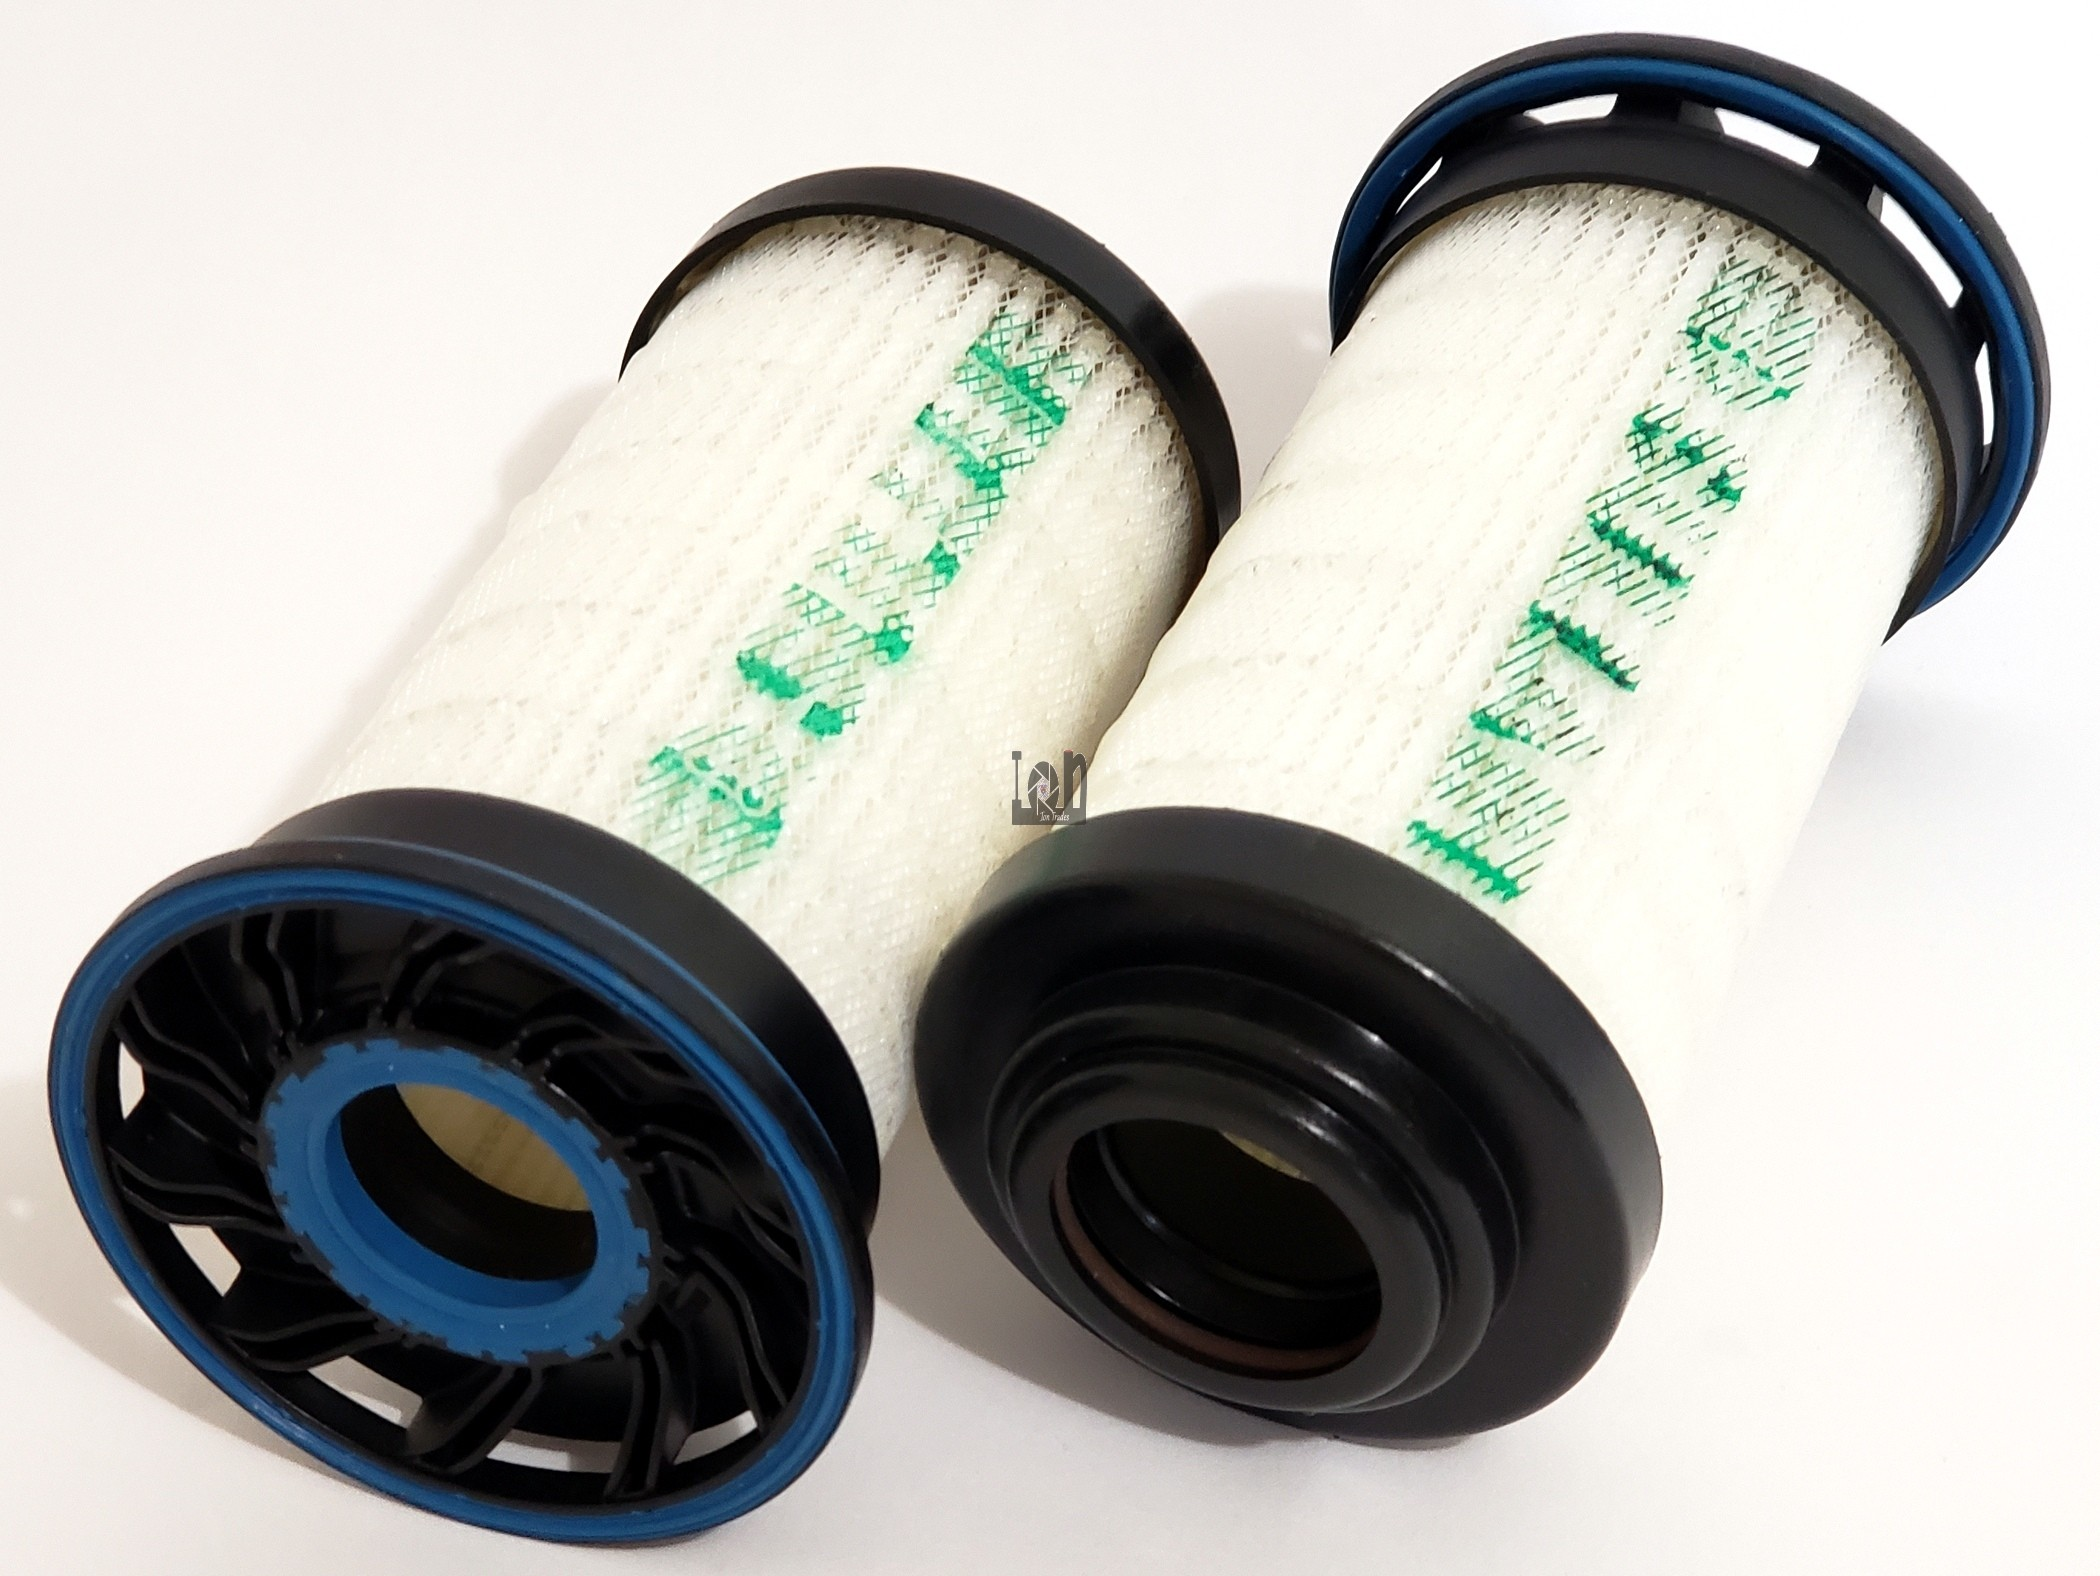 2pc Sullair 02250156-601 Oil Filter Replacement Compressor Parts